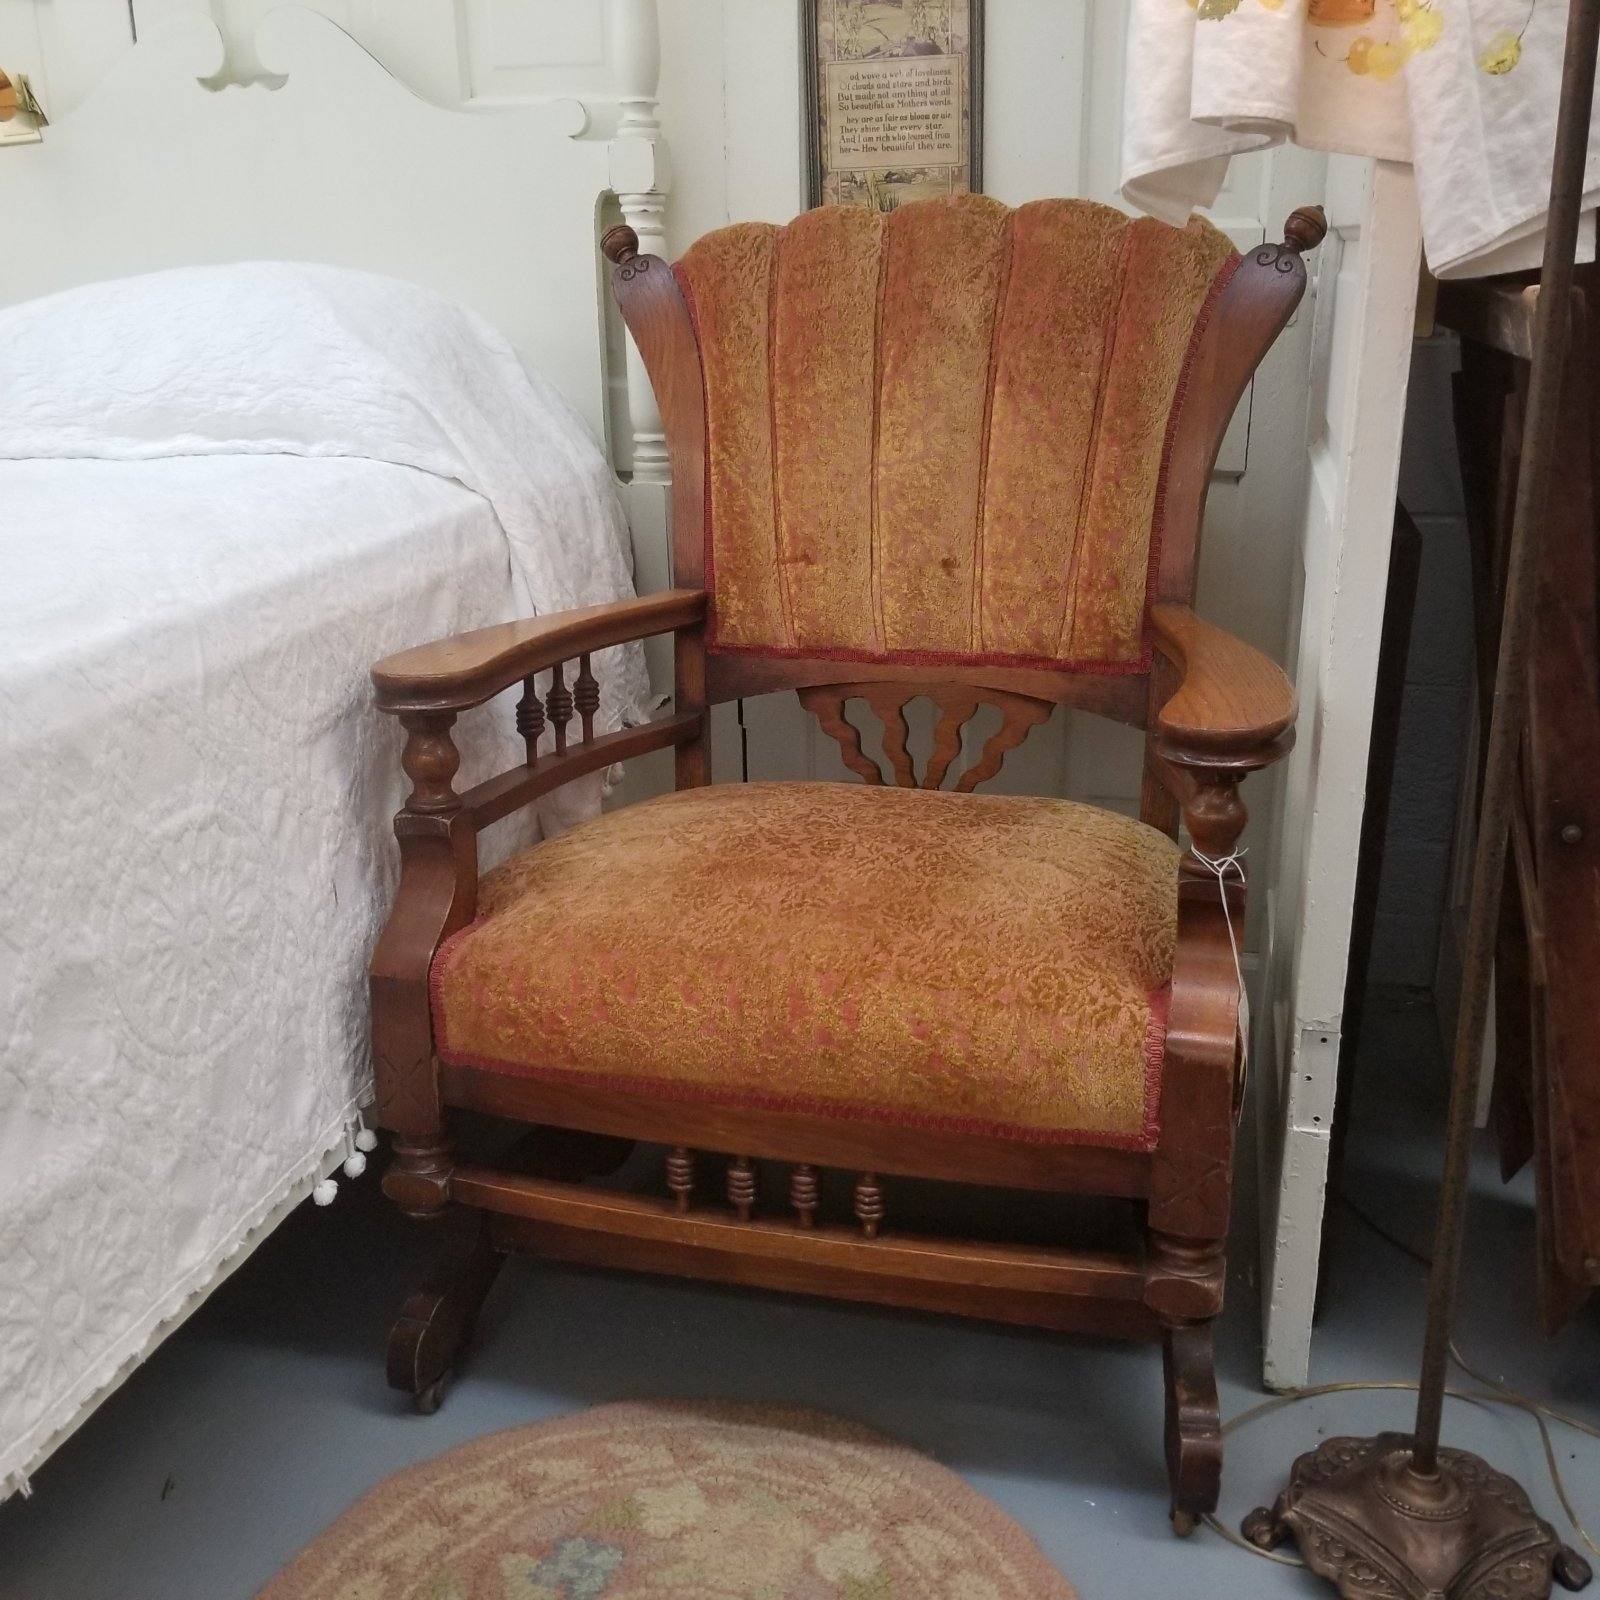 Large Rocking Chair with Orange Upholstery